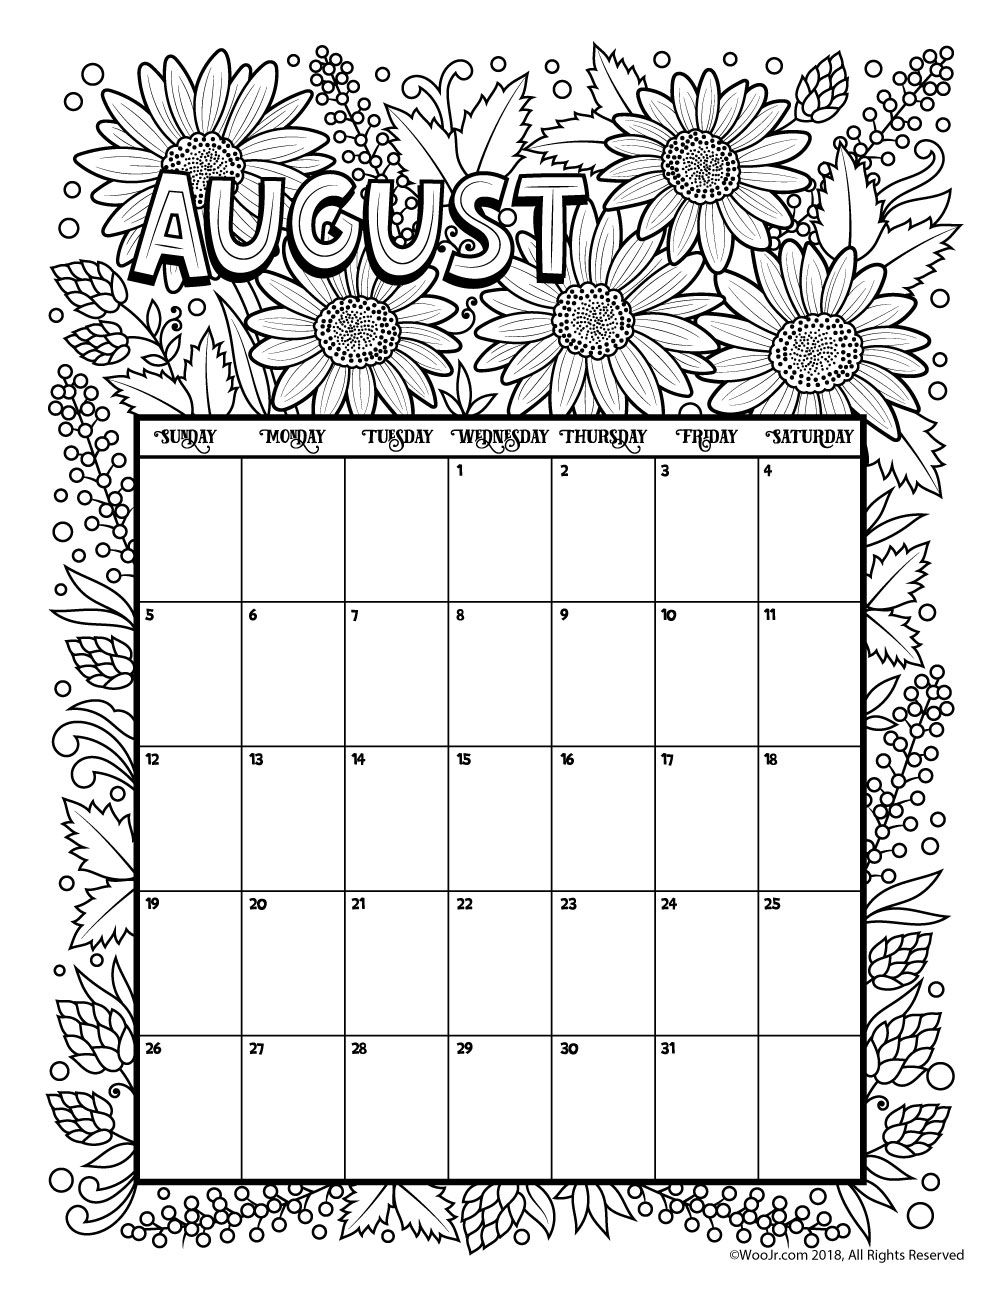 August 2018 coloring calendar page for Calendar coloring page